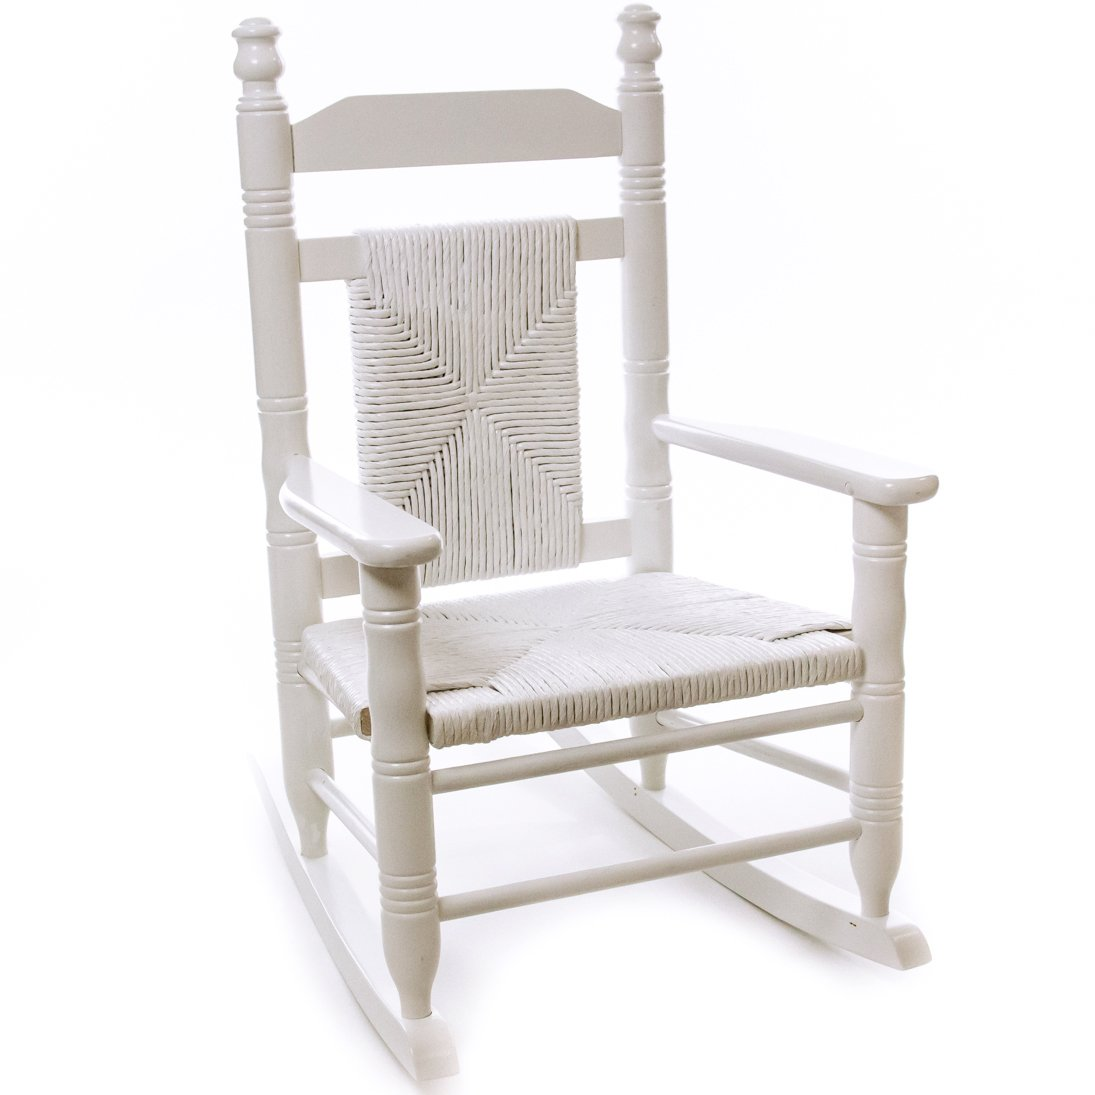 Rocking Chairs  Indoor Furniture  Home Furniture - Cracker Barrel ...